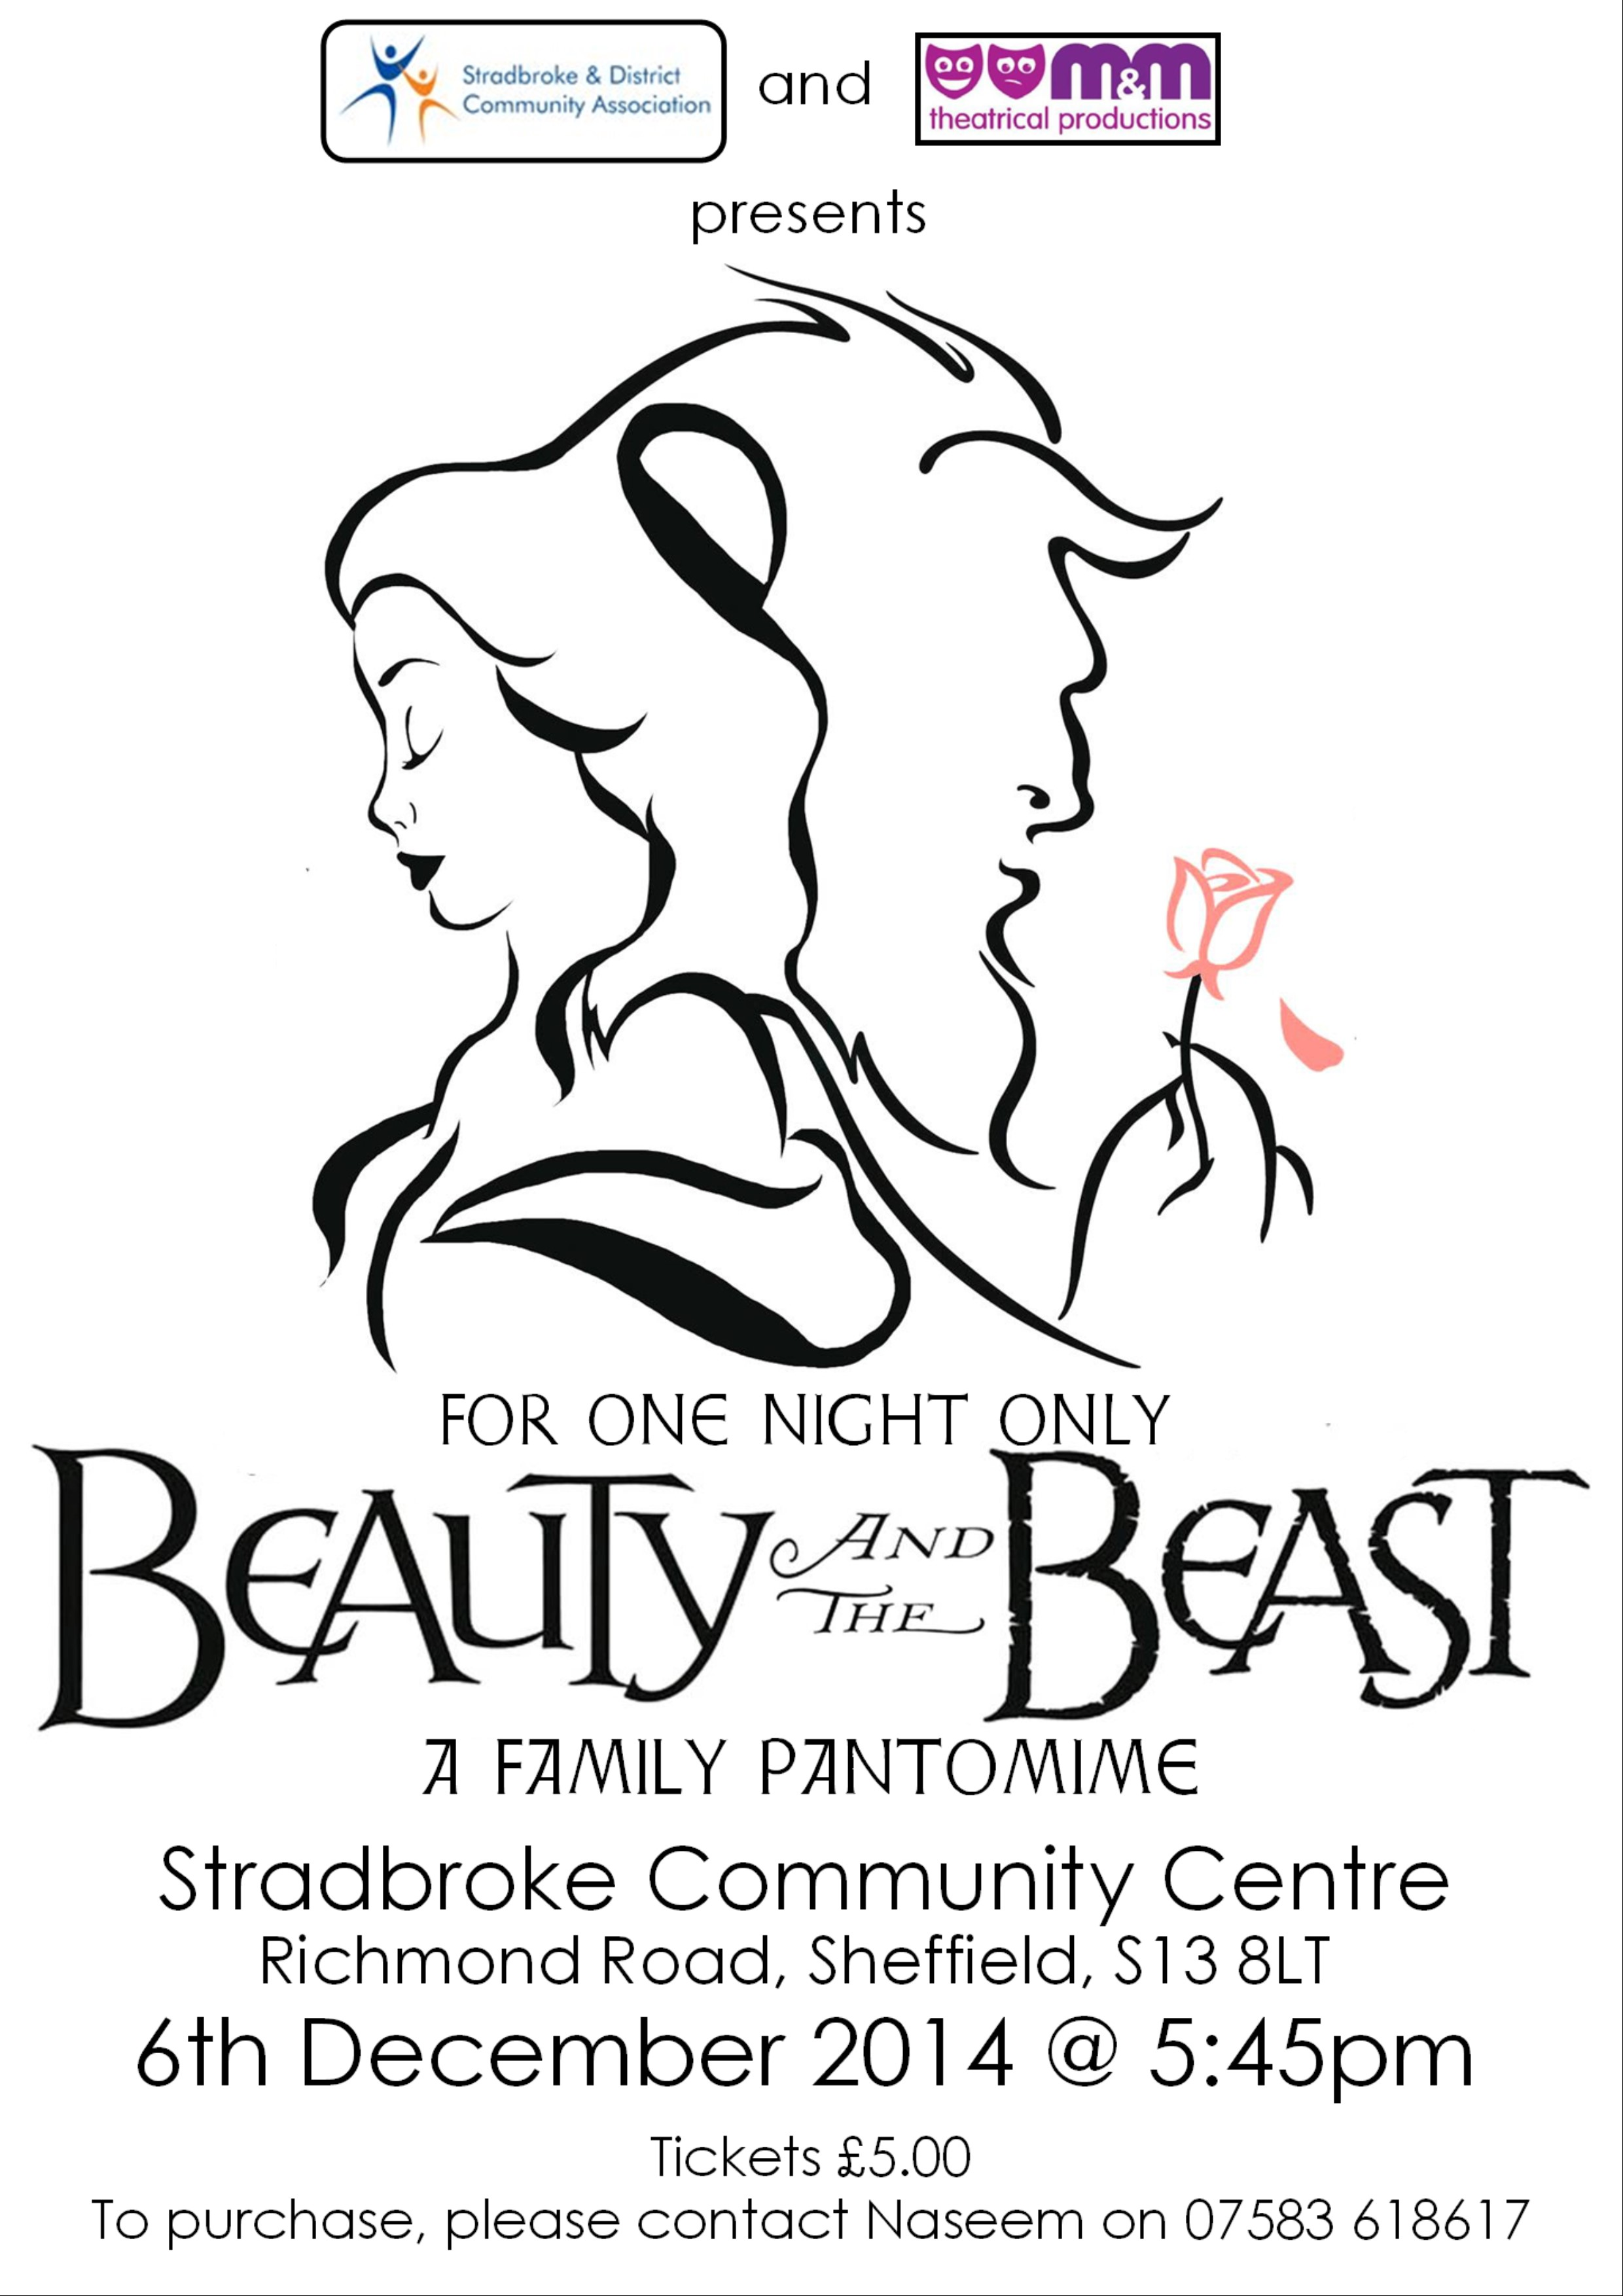 Beauty and the Beast, 6th December 2014, 5:45pm